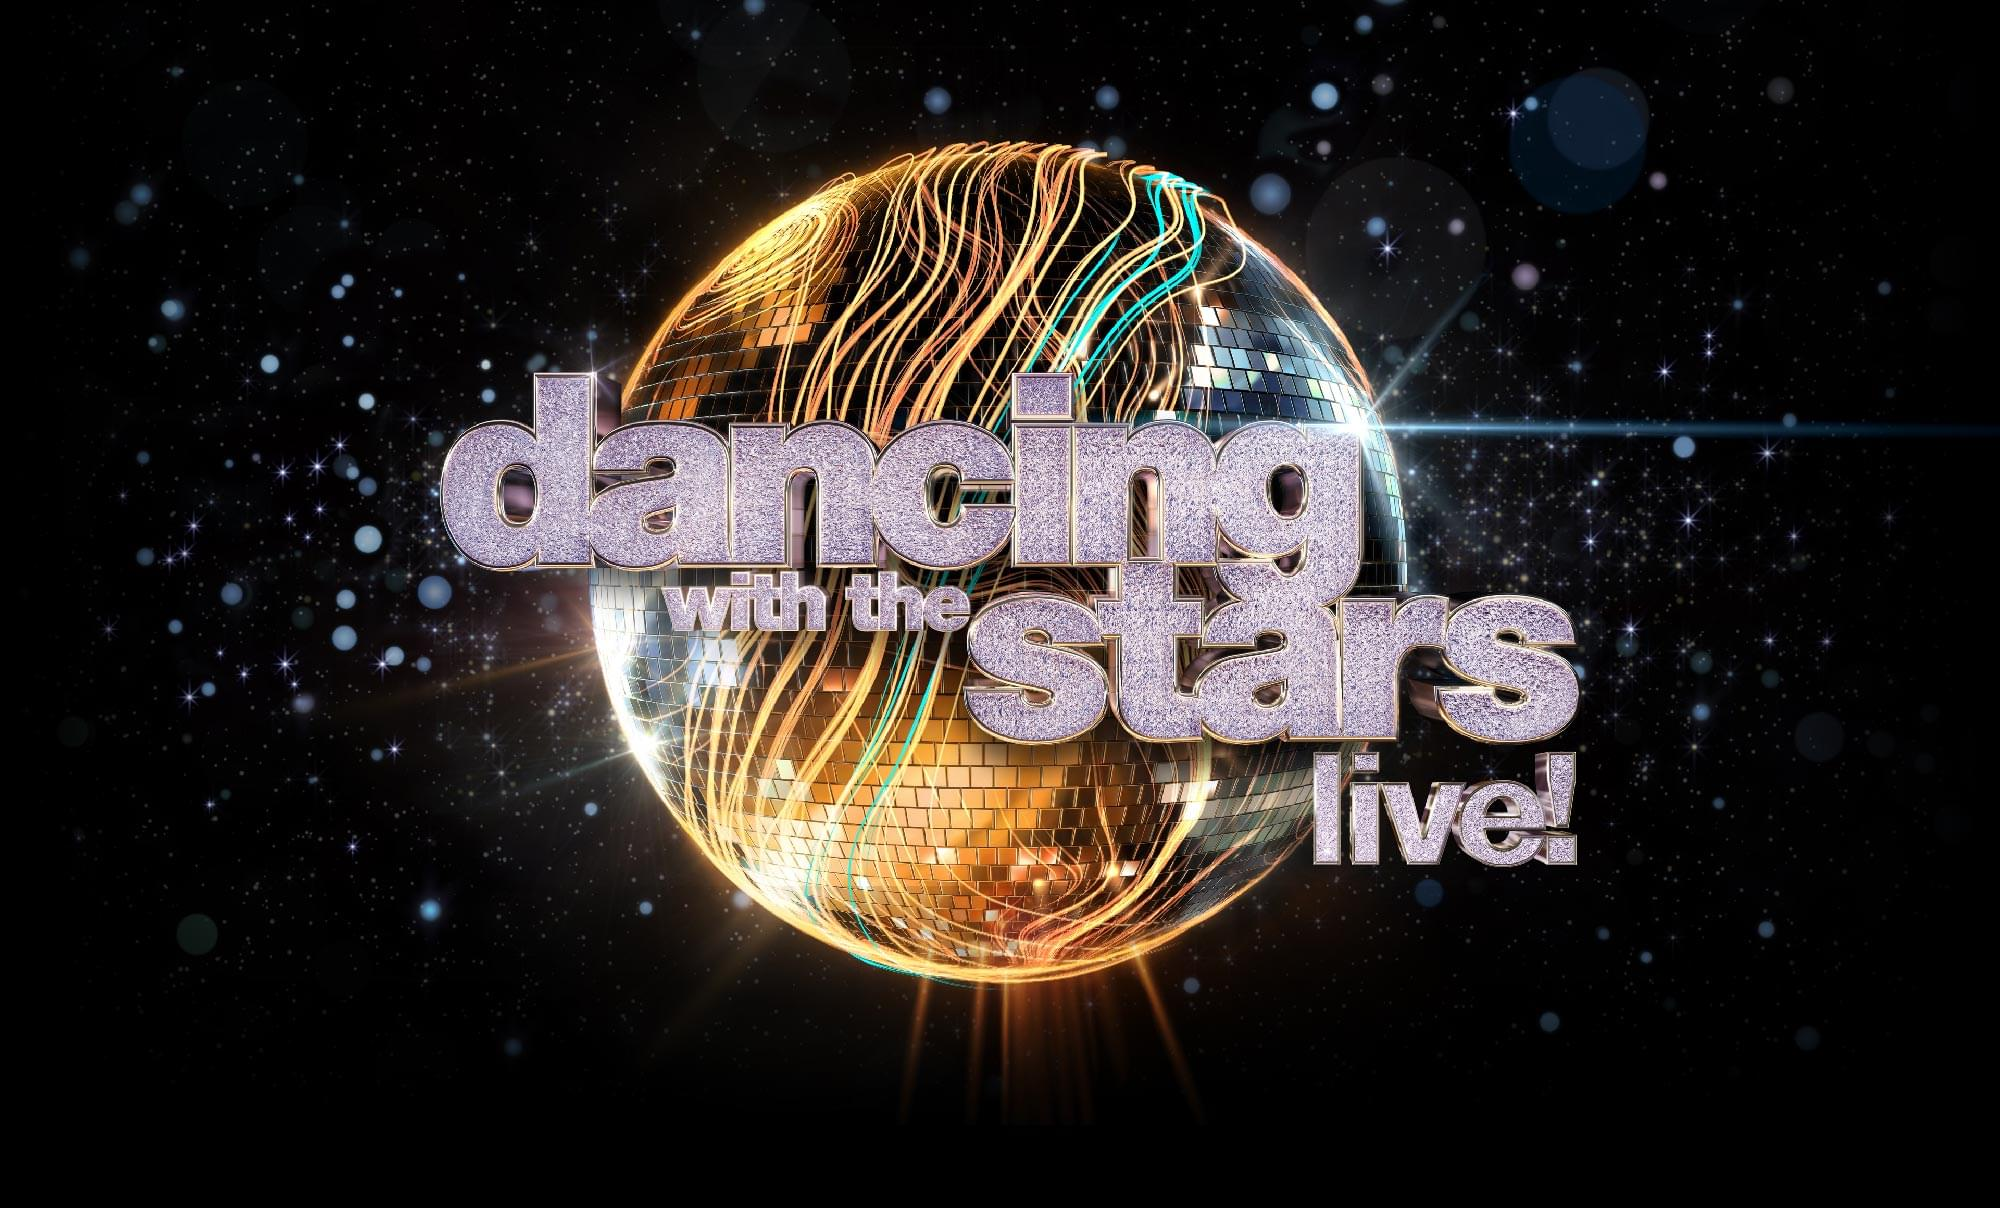 Dancing with the Stars in Ames